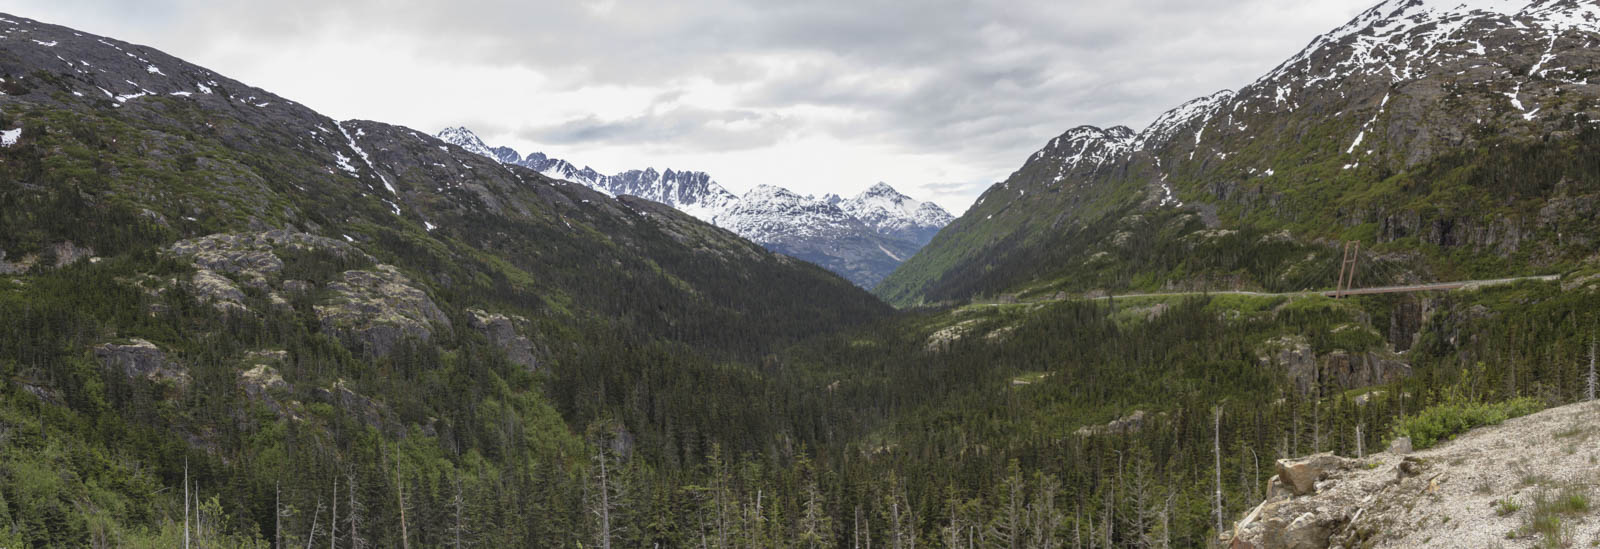 201605 - Alaska and Yukon - 0229 - Panorama